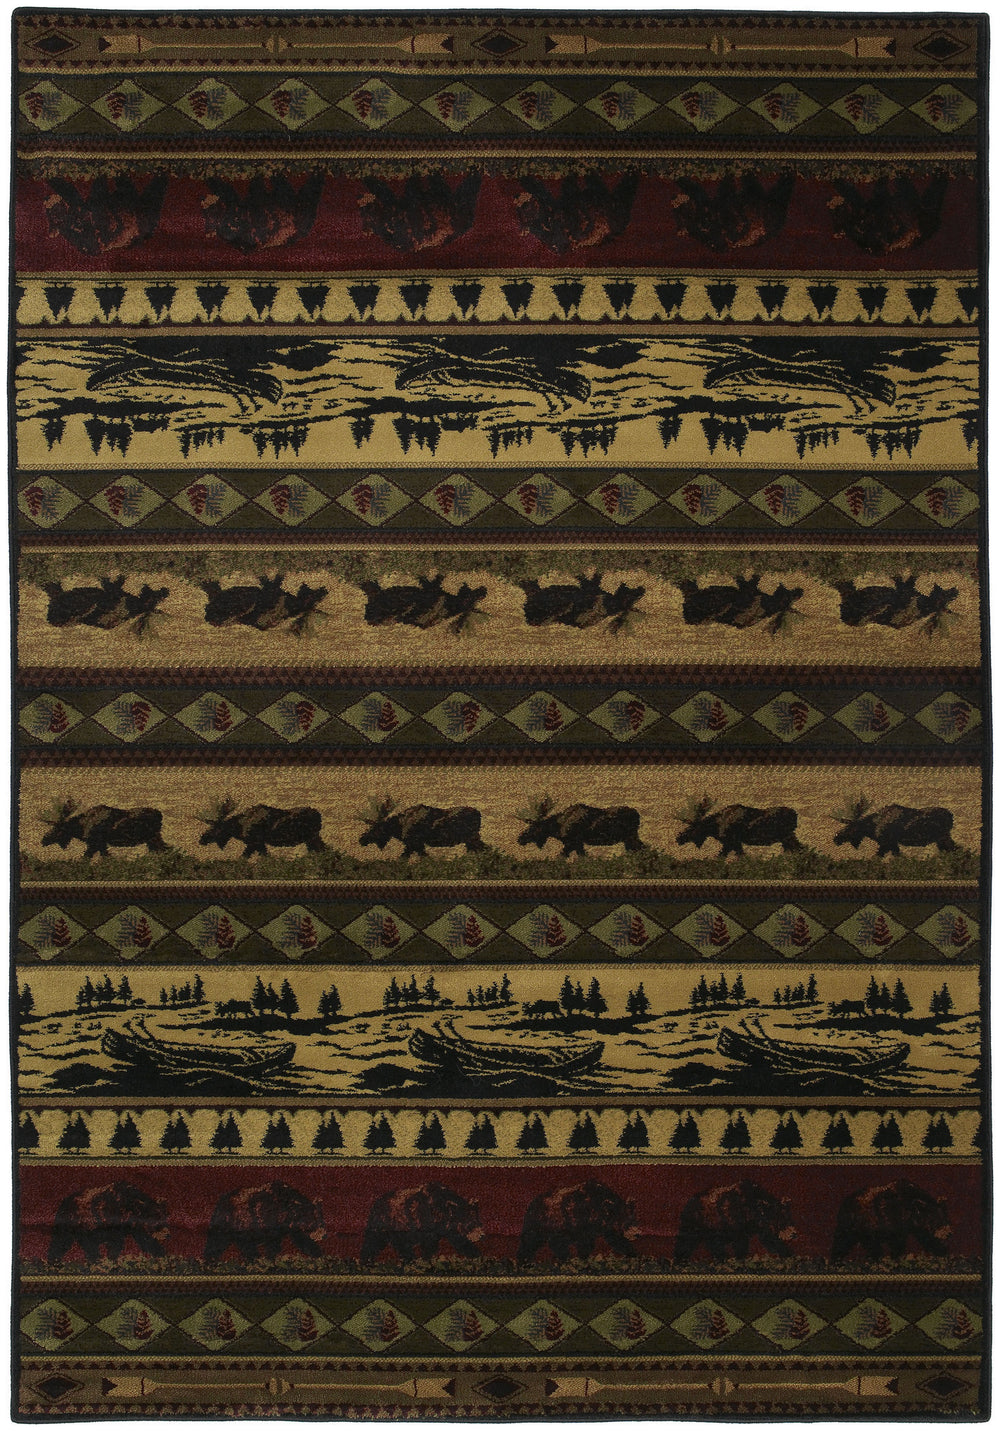 United Weaver Marshfield Genesis Kodiak Island Area Rug